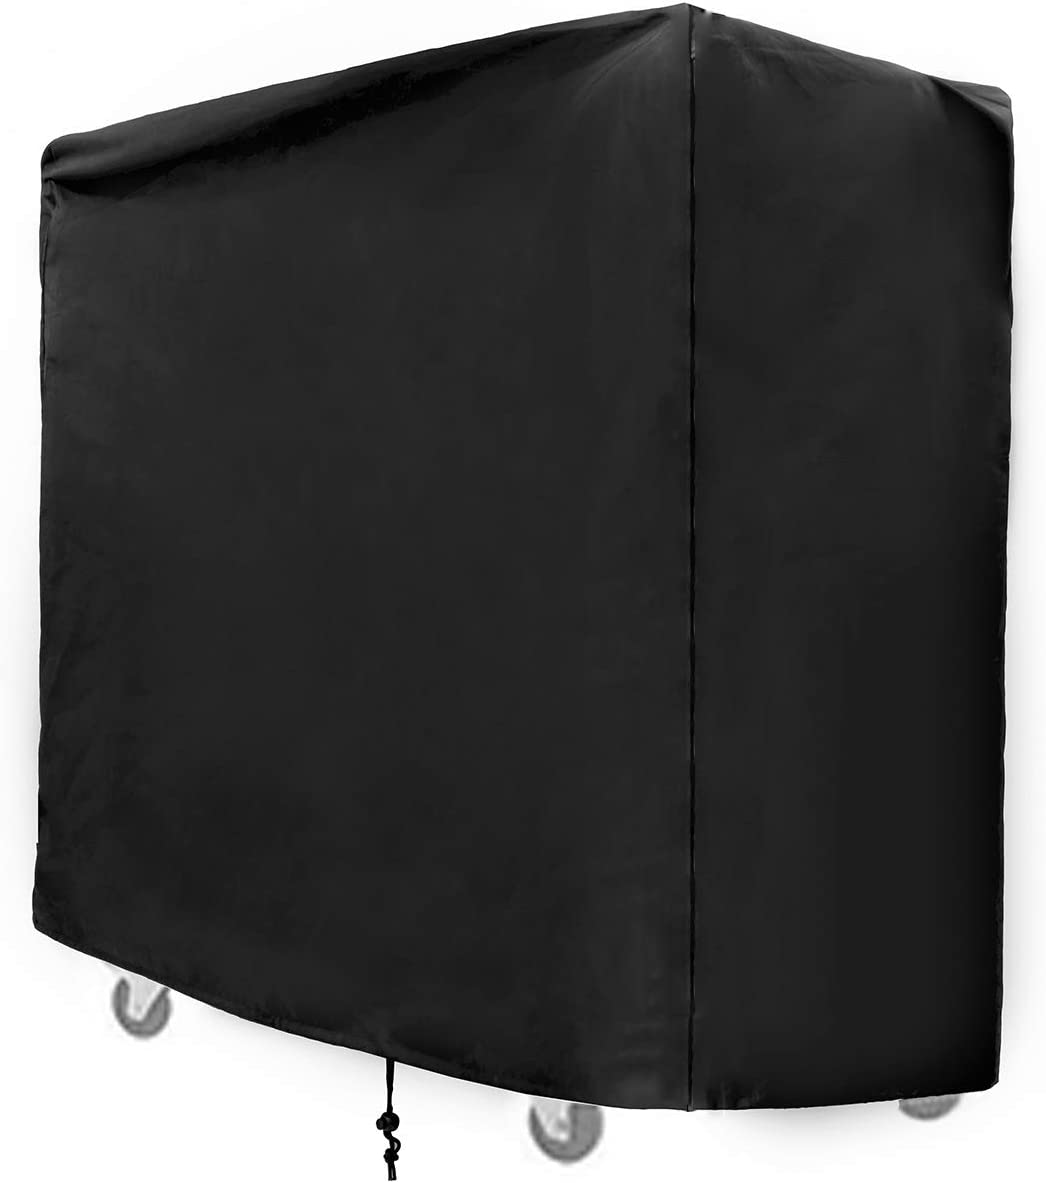 SIRUITON Cooler Cart Cover Fit for Most 80 QT Rolling Patio Cooler Cover Waterproof -24 Months of sue 37.4 x 19.68 x 36.22in